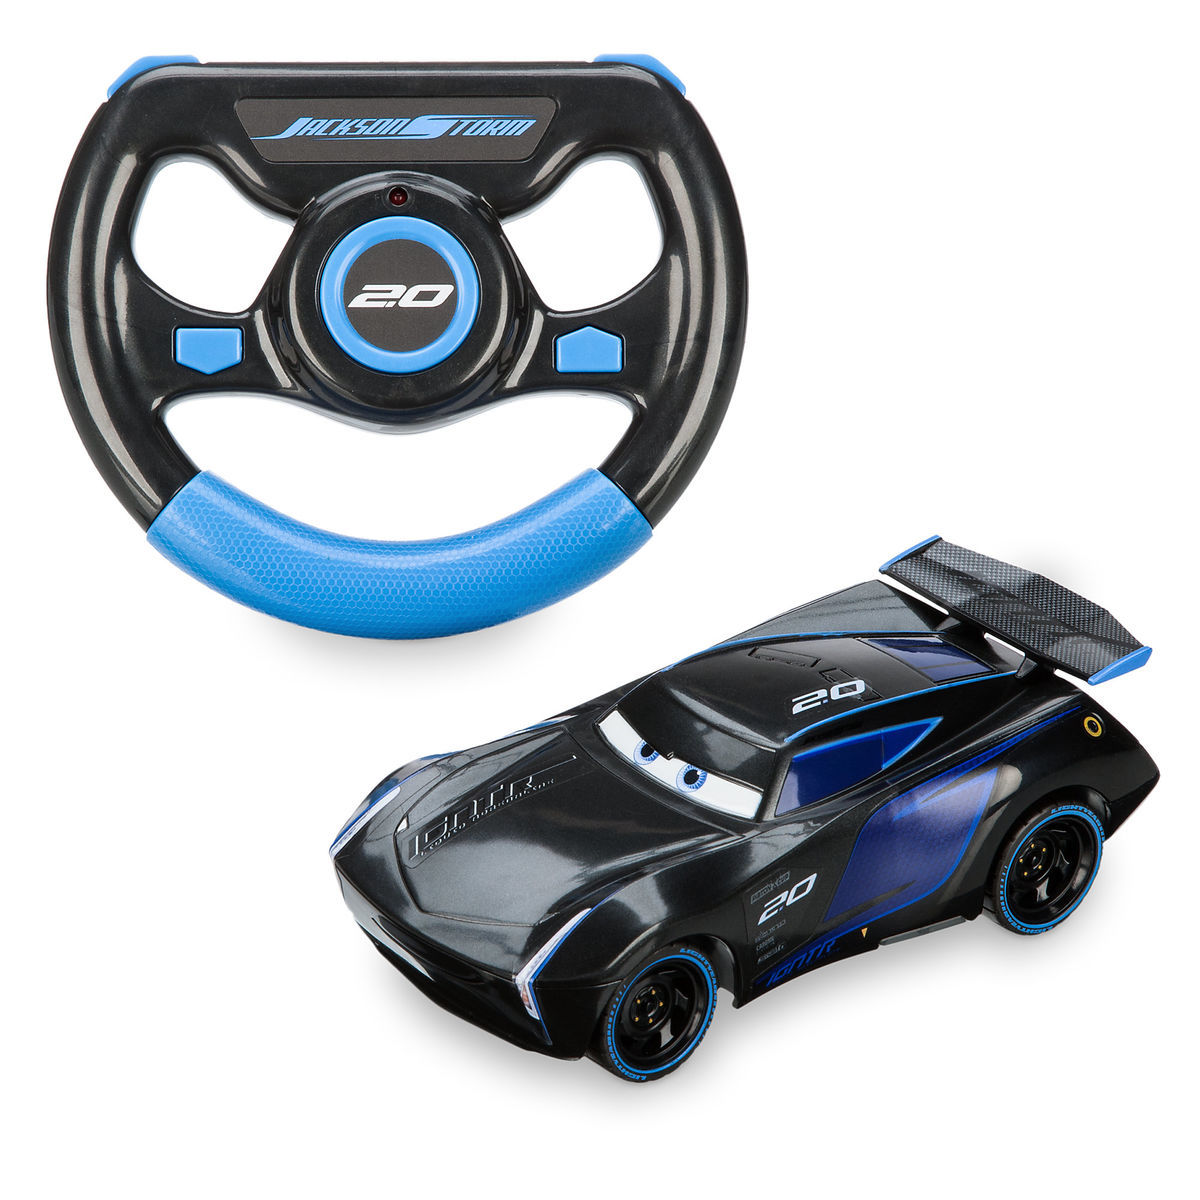 Jackson Storm Remote Control Vehicle Cars 3 Shopdisney